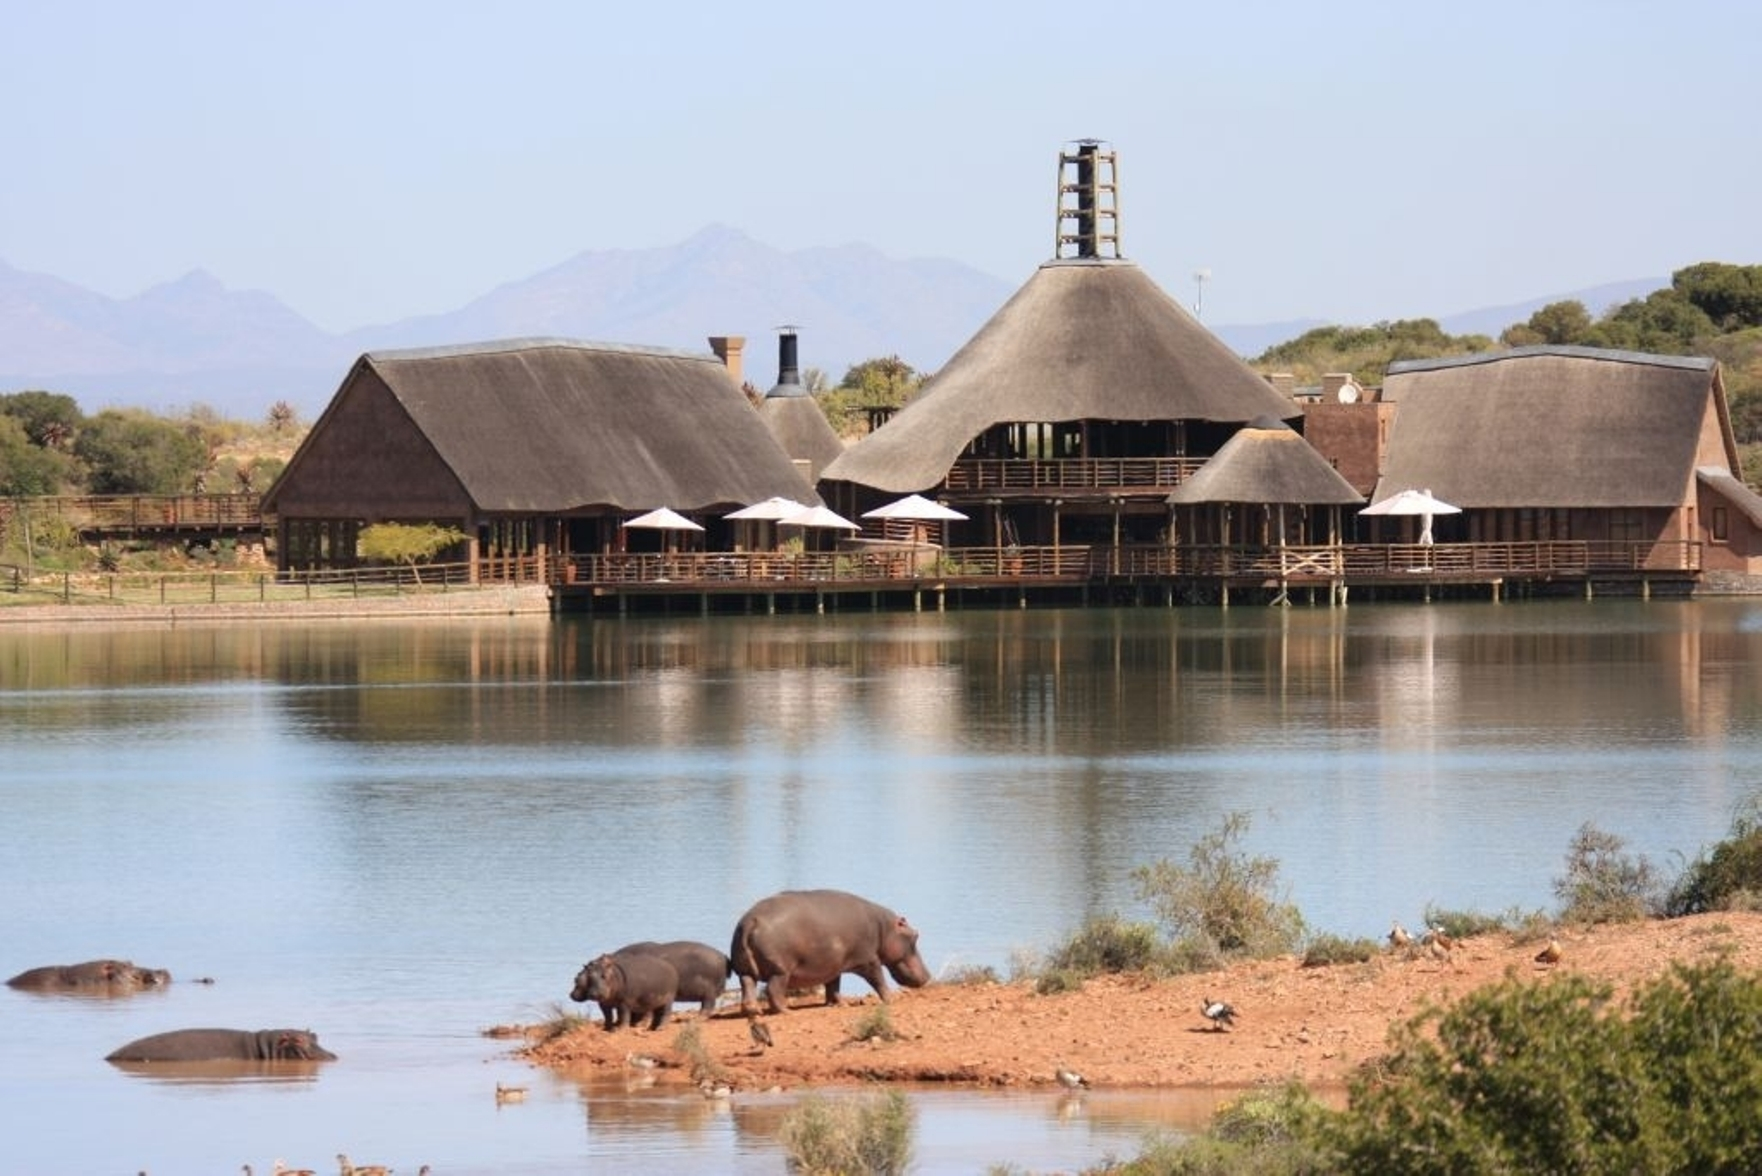 Lodge with hippos large